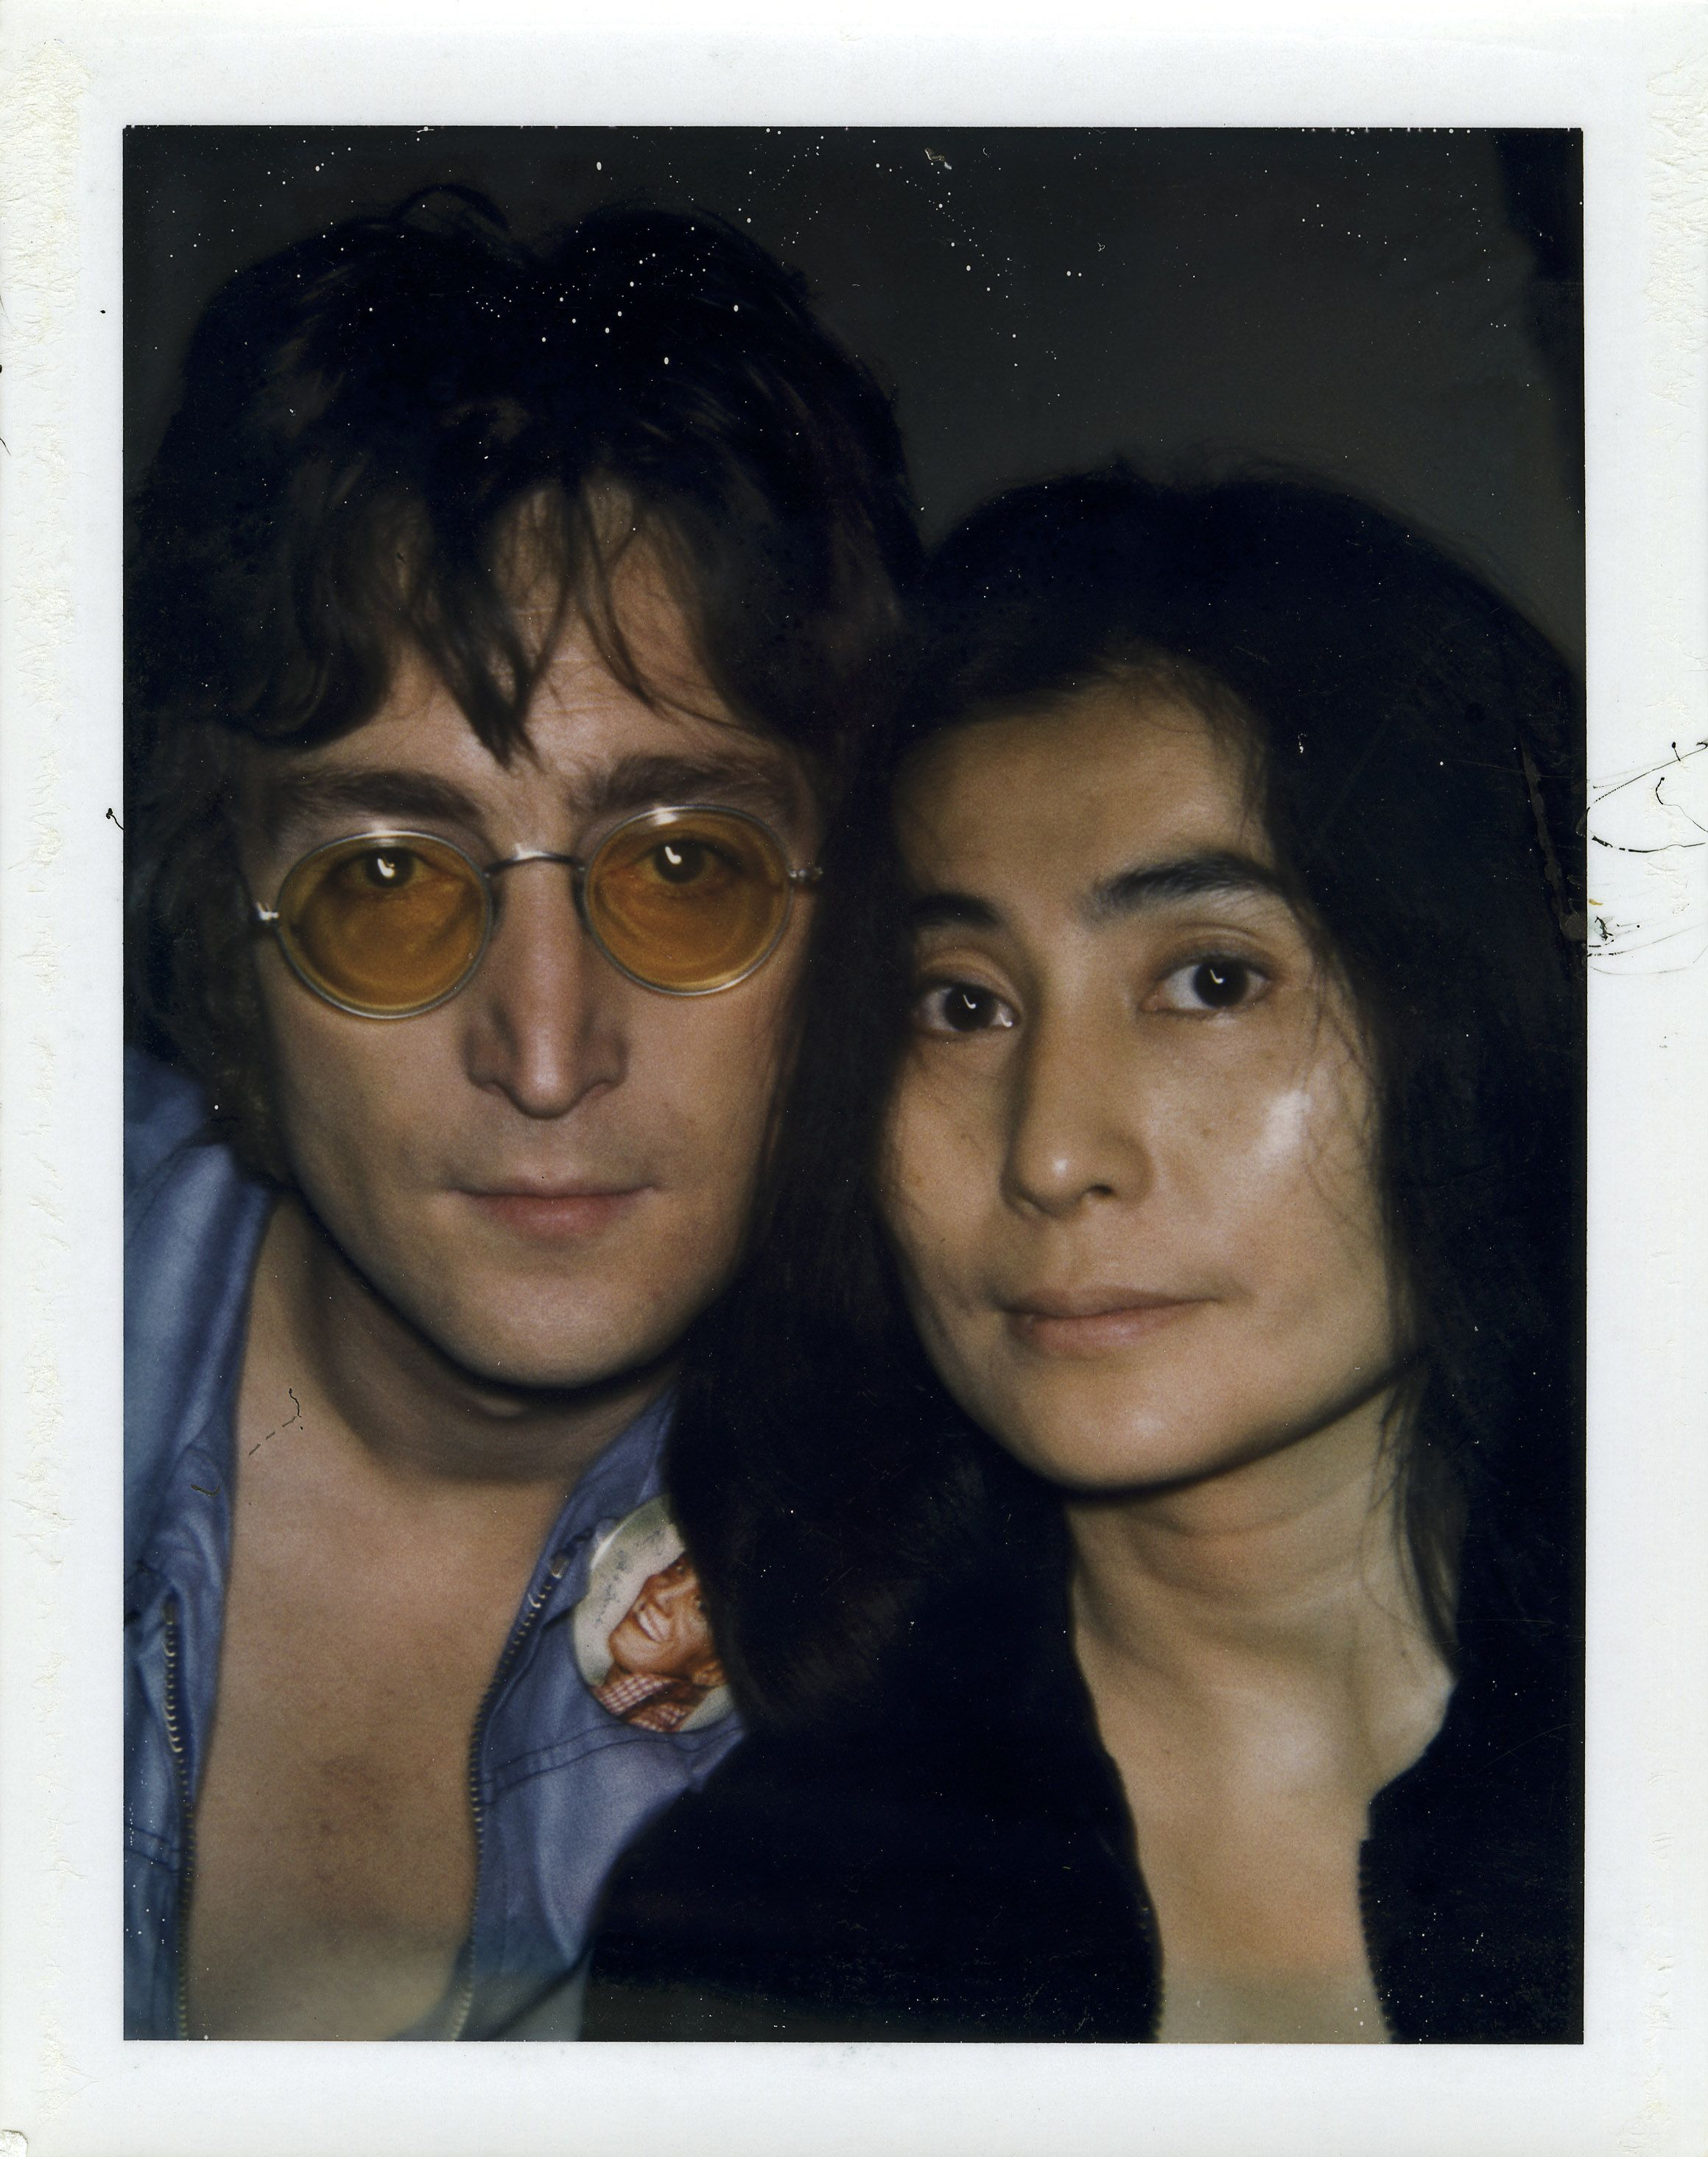 Andy Warhol American 1928 87 John Lennon And Yoko Ono 1971 Polaroid Polacolor Type 108 Photograph John Lennon And Yoko John Lennon Yoko Ono Imagine John Lennon